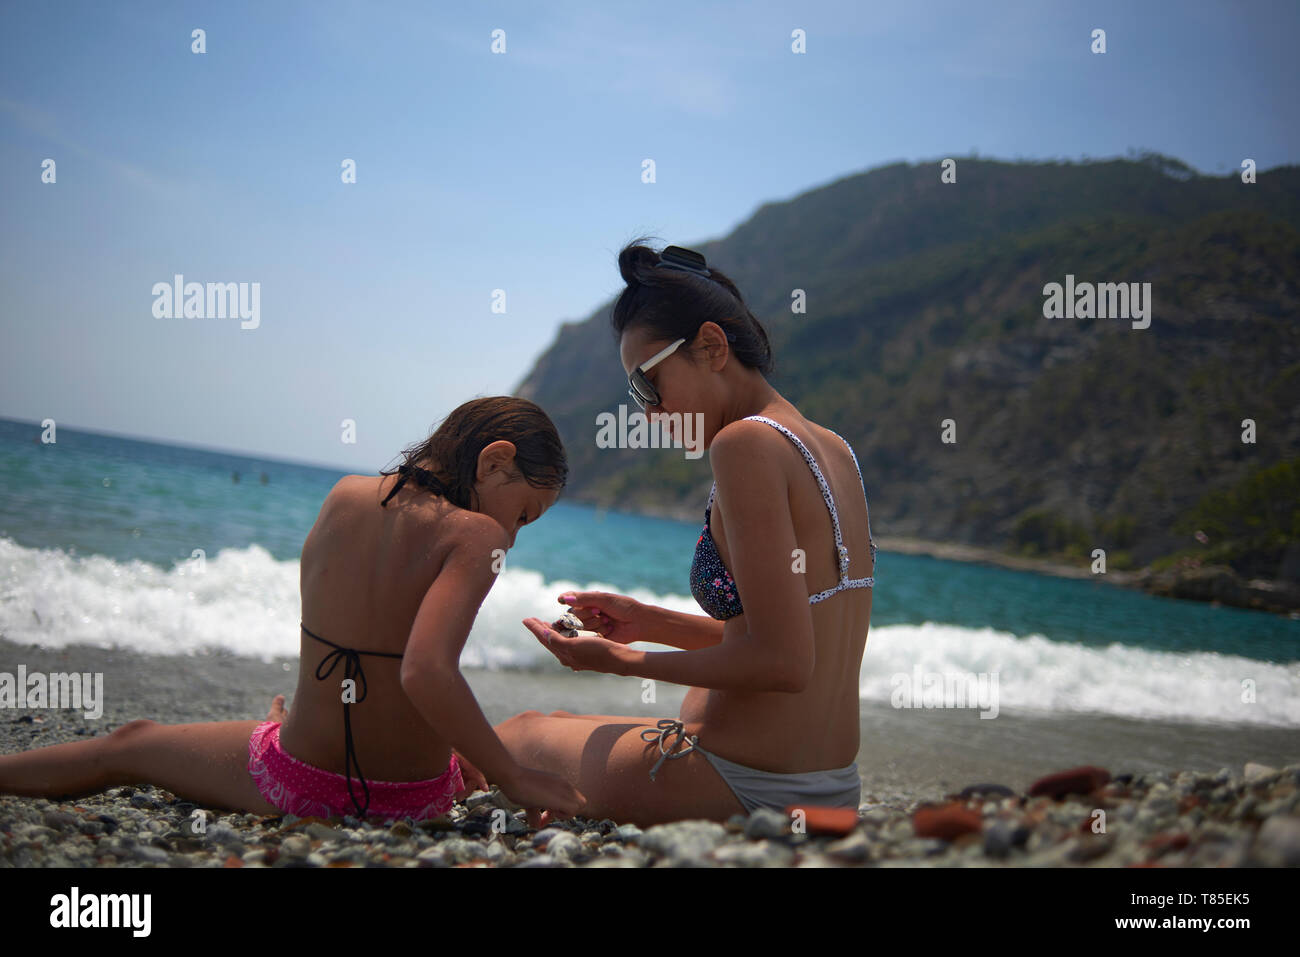 Asian mother and her two young daughters enjoying the beach along the Cinque Terra region in Italy in bright summer sunshine - Stock Image